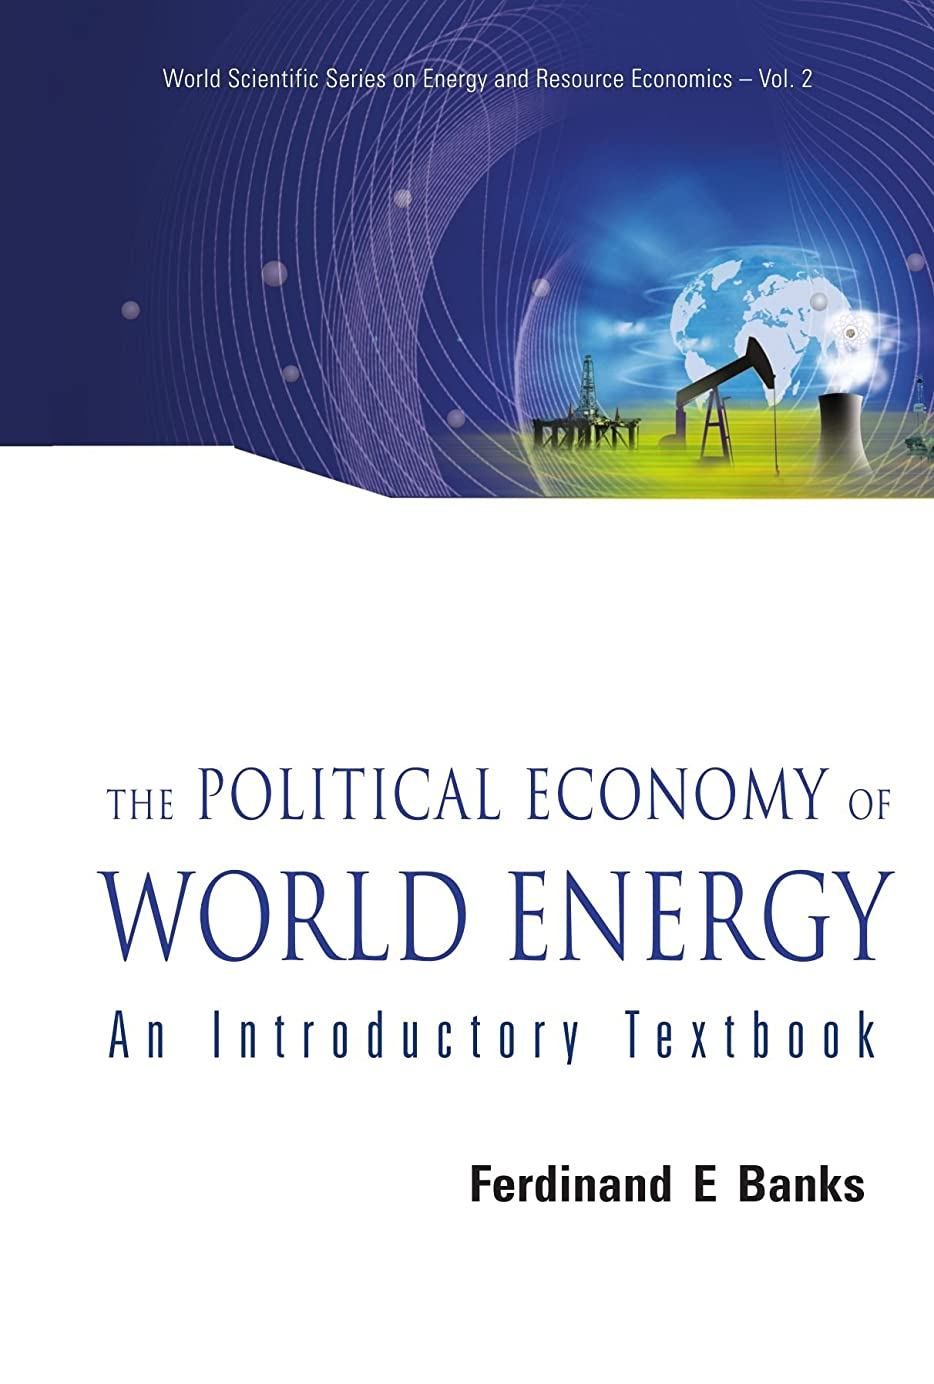 投げるエンドテーブル失礼The Political Economy Of World Energy: An Introductory Textbook (World Scientific Series on Energy and Resource Economics)